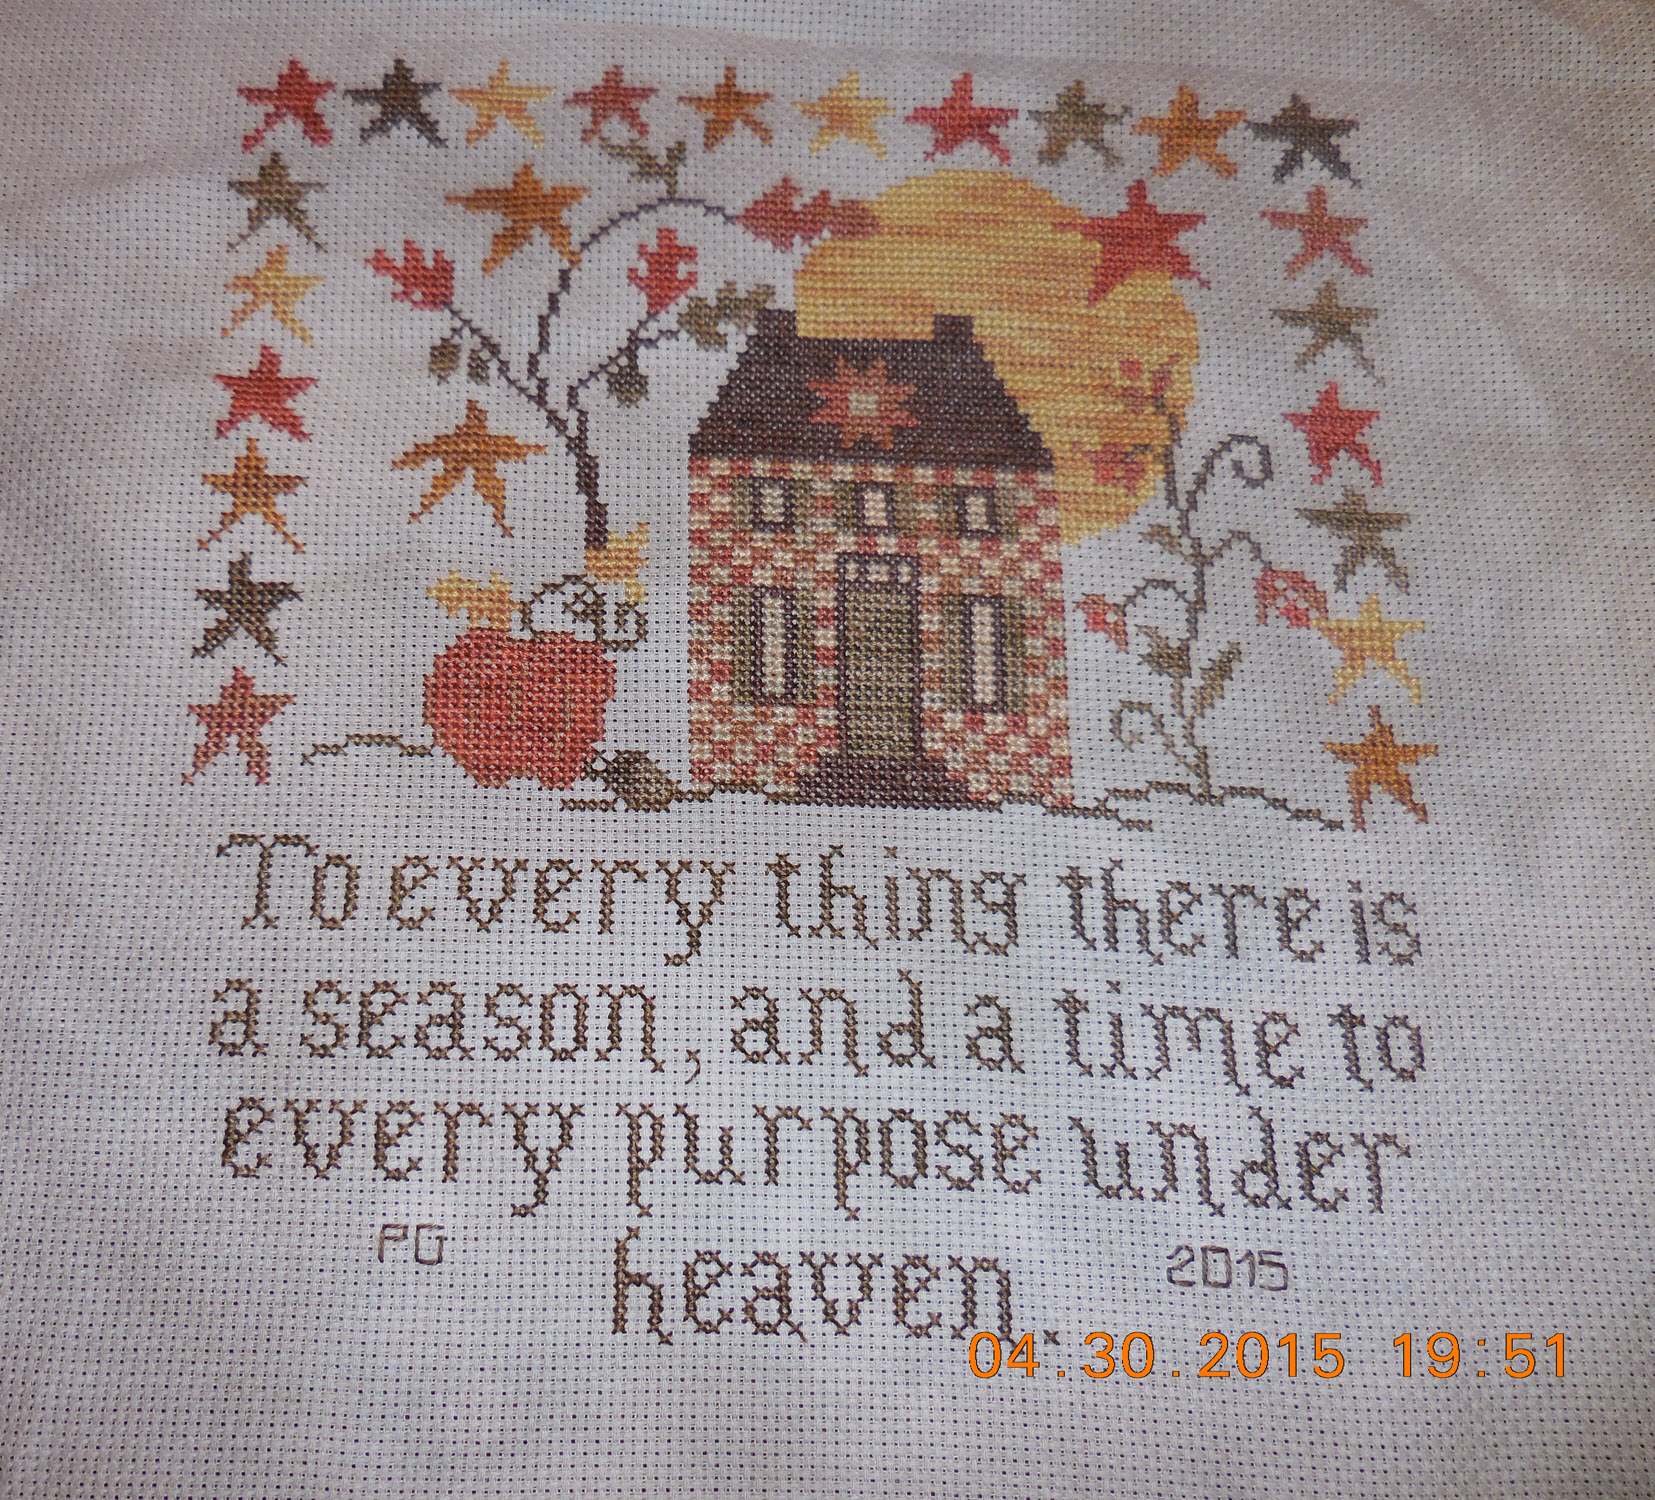 Pat 39 s cross stitch corner a place to share a craft i love for Blackbird designs tending the garden